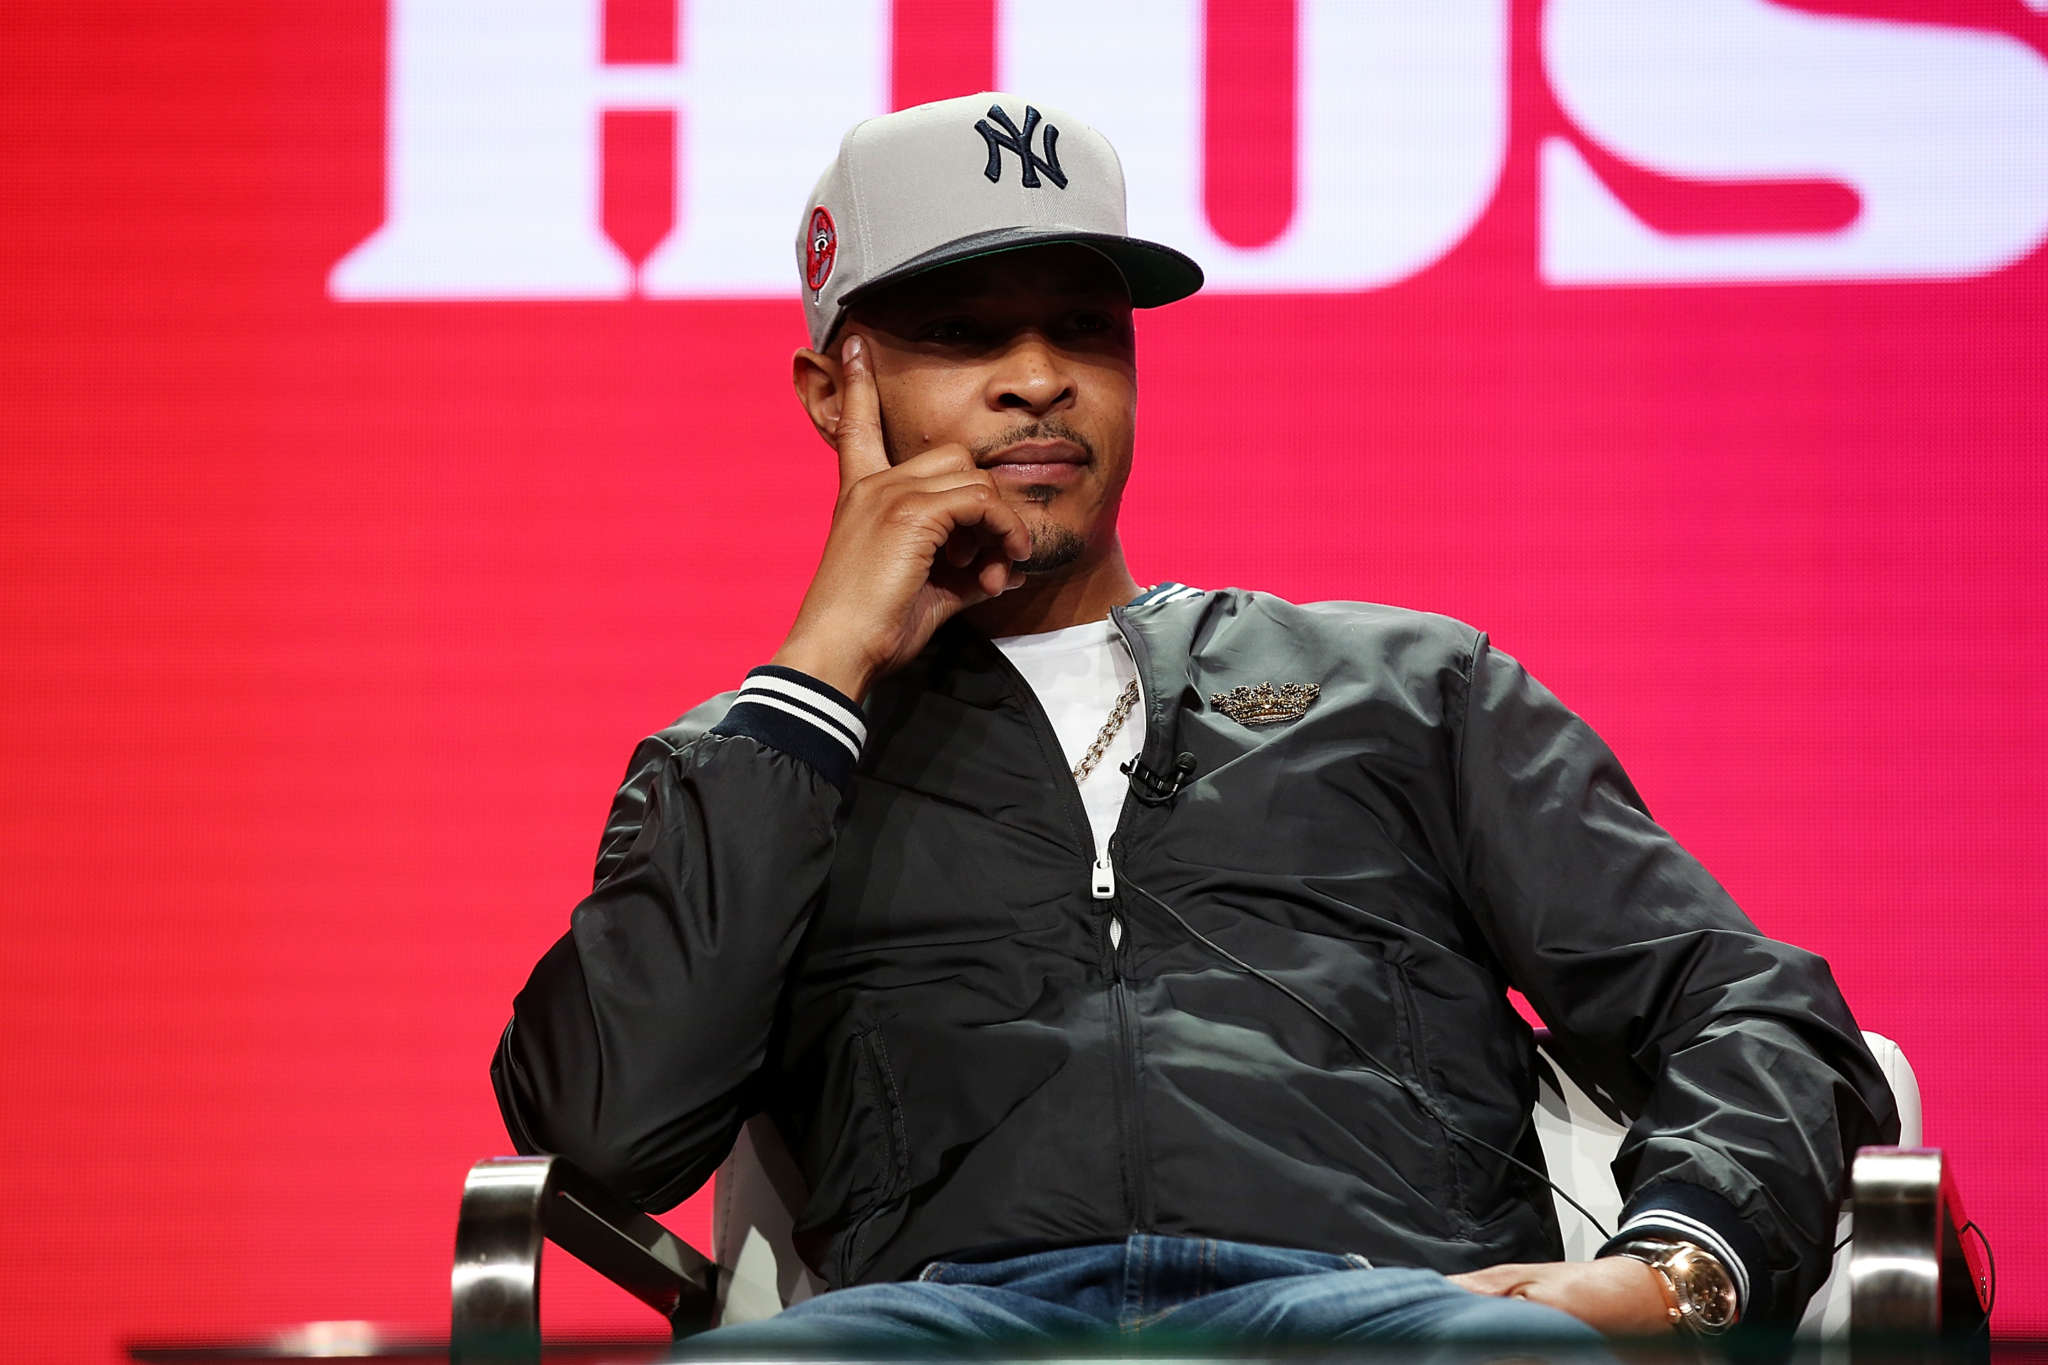 T.I. Is Outraged By A Recent Tragedy That Just Took Place In Texas - The Police Reportedly Shot Two Kids, Aged 13 And 15